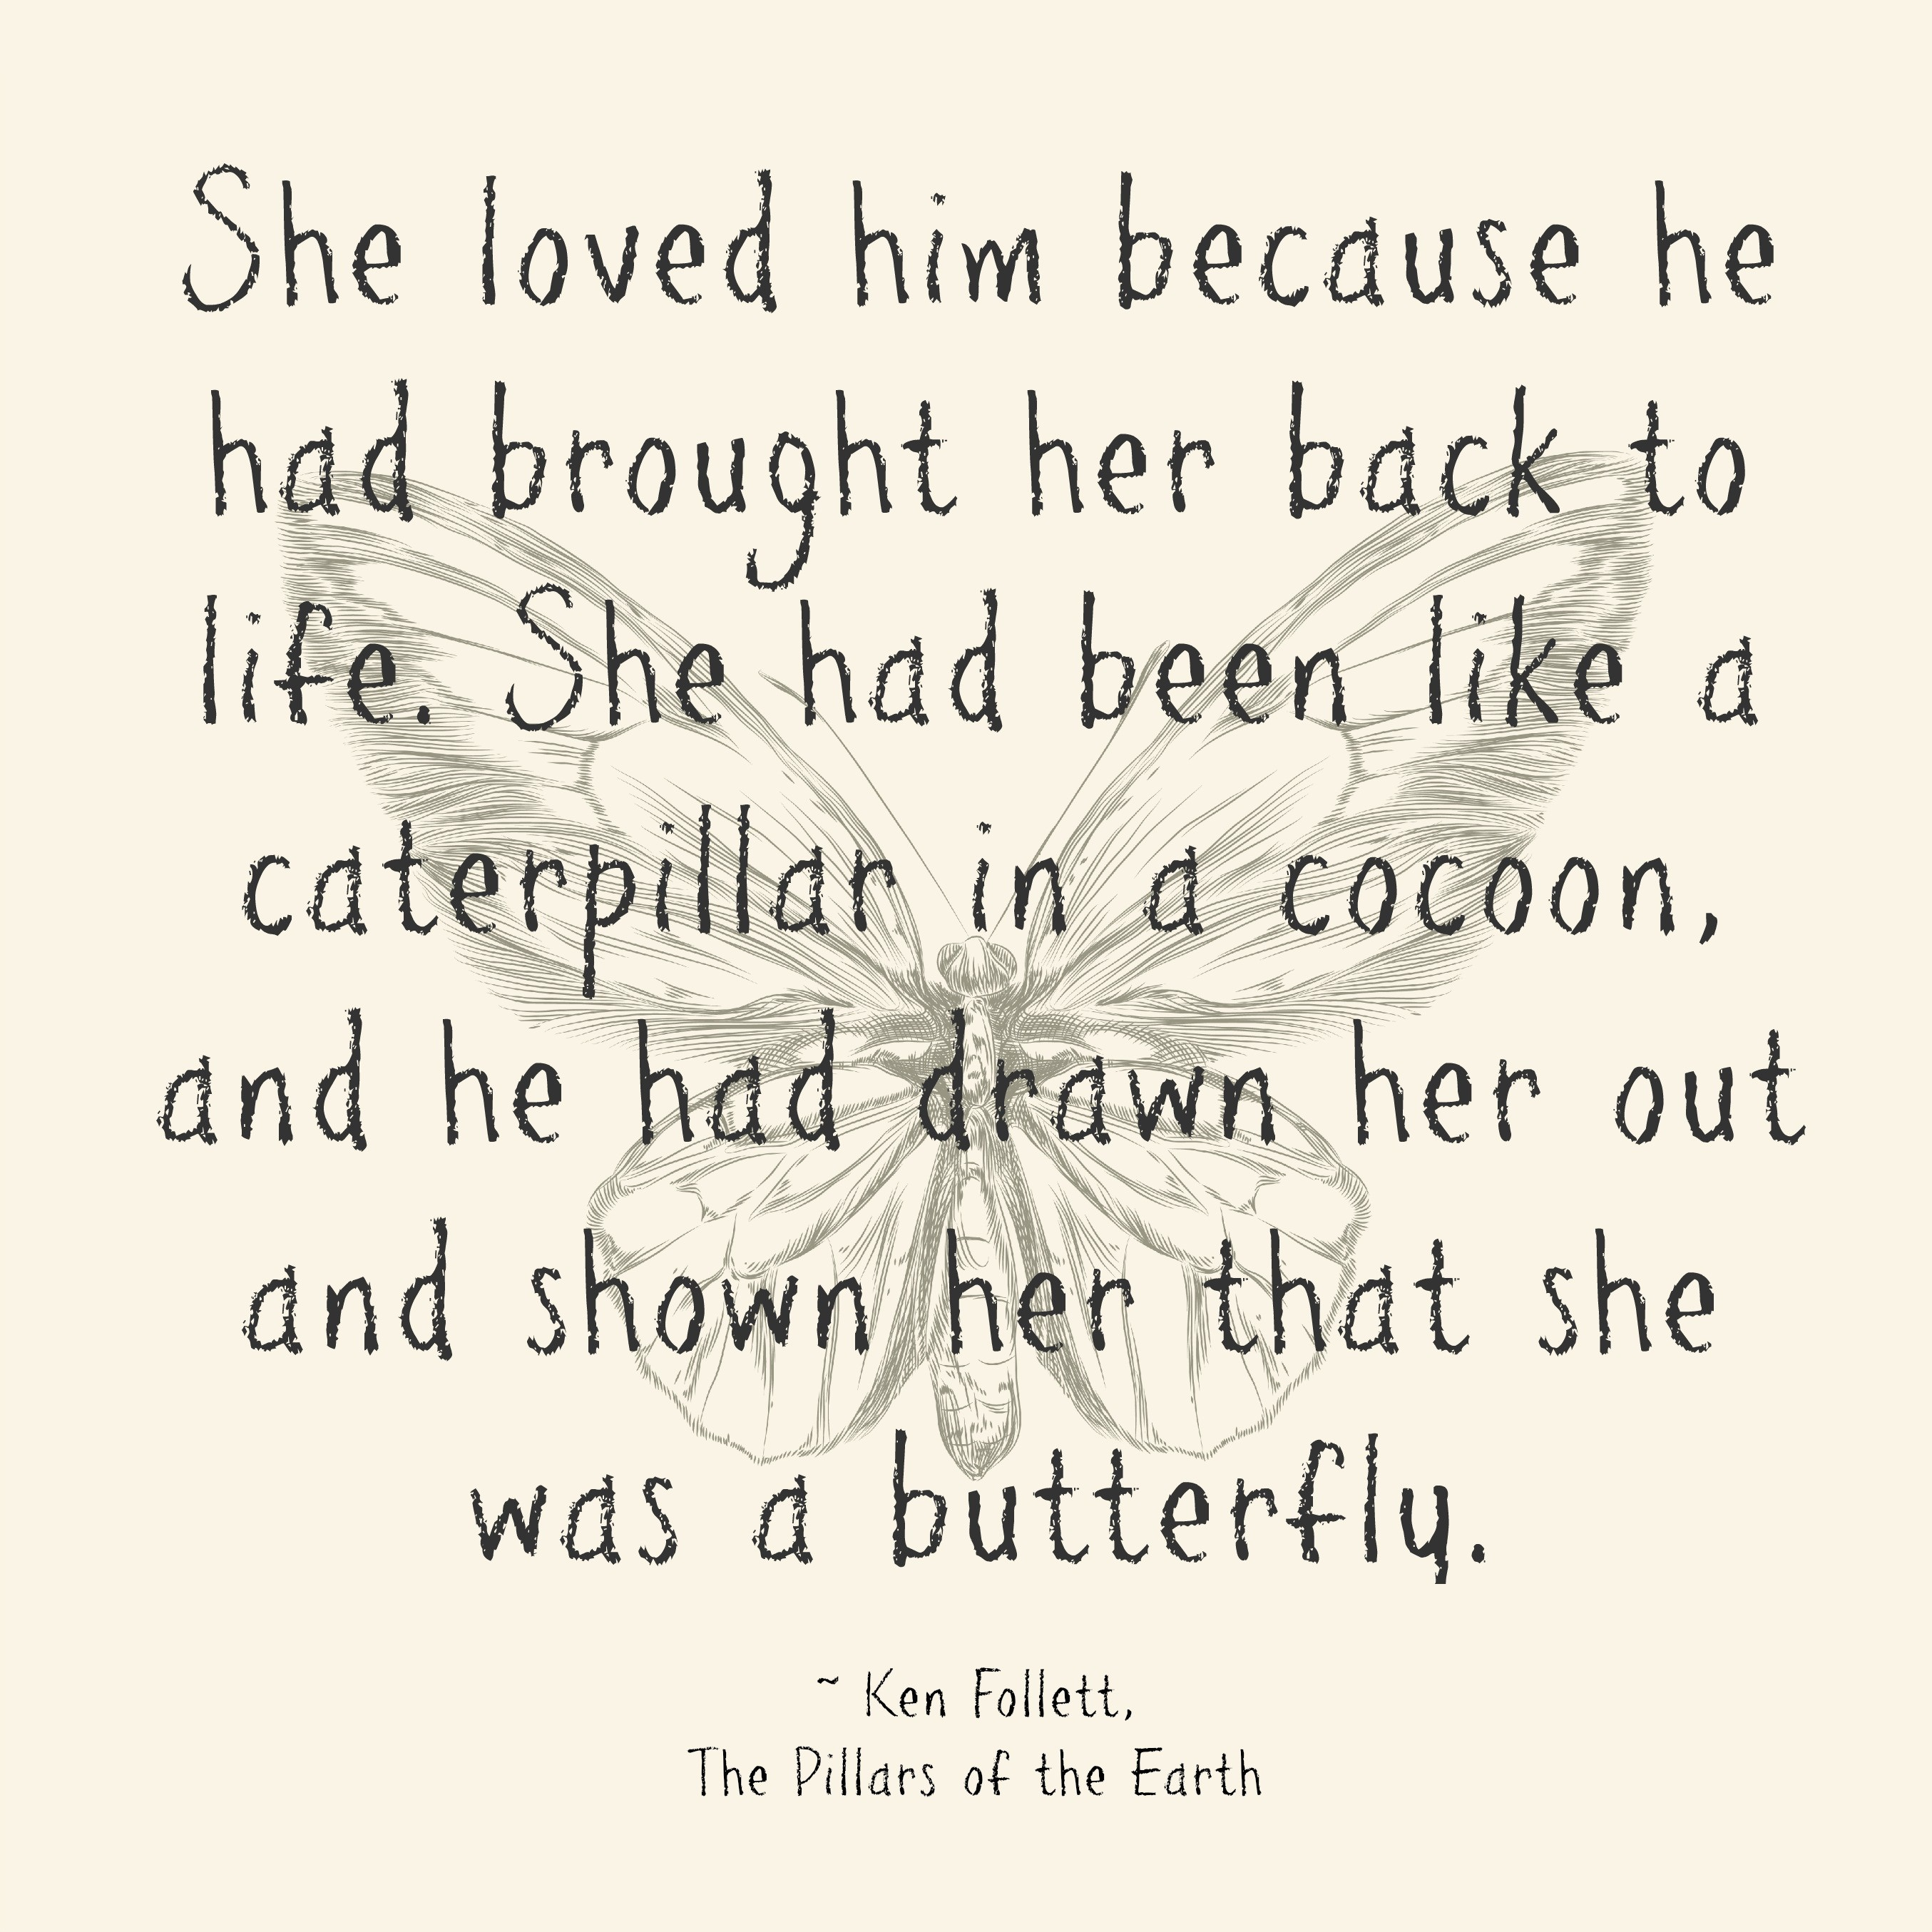 She loved him because he had brought her back to life. She had been like a caterpillar in a cocoon, and he had drawn her out and shown her that she was a butterfly.